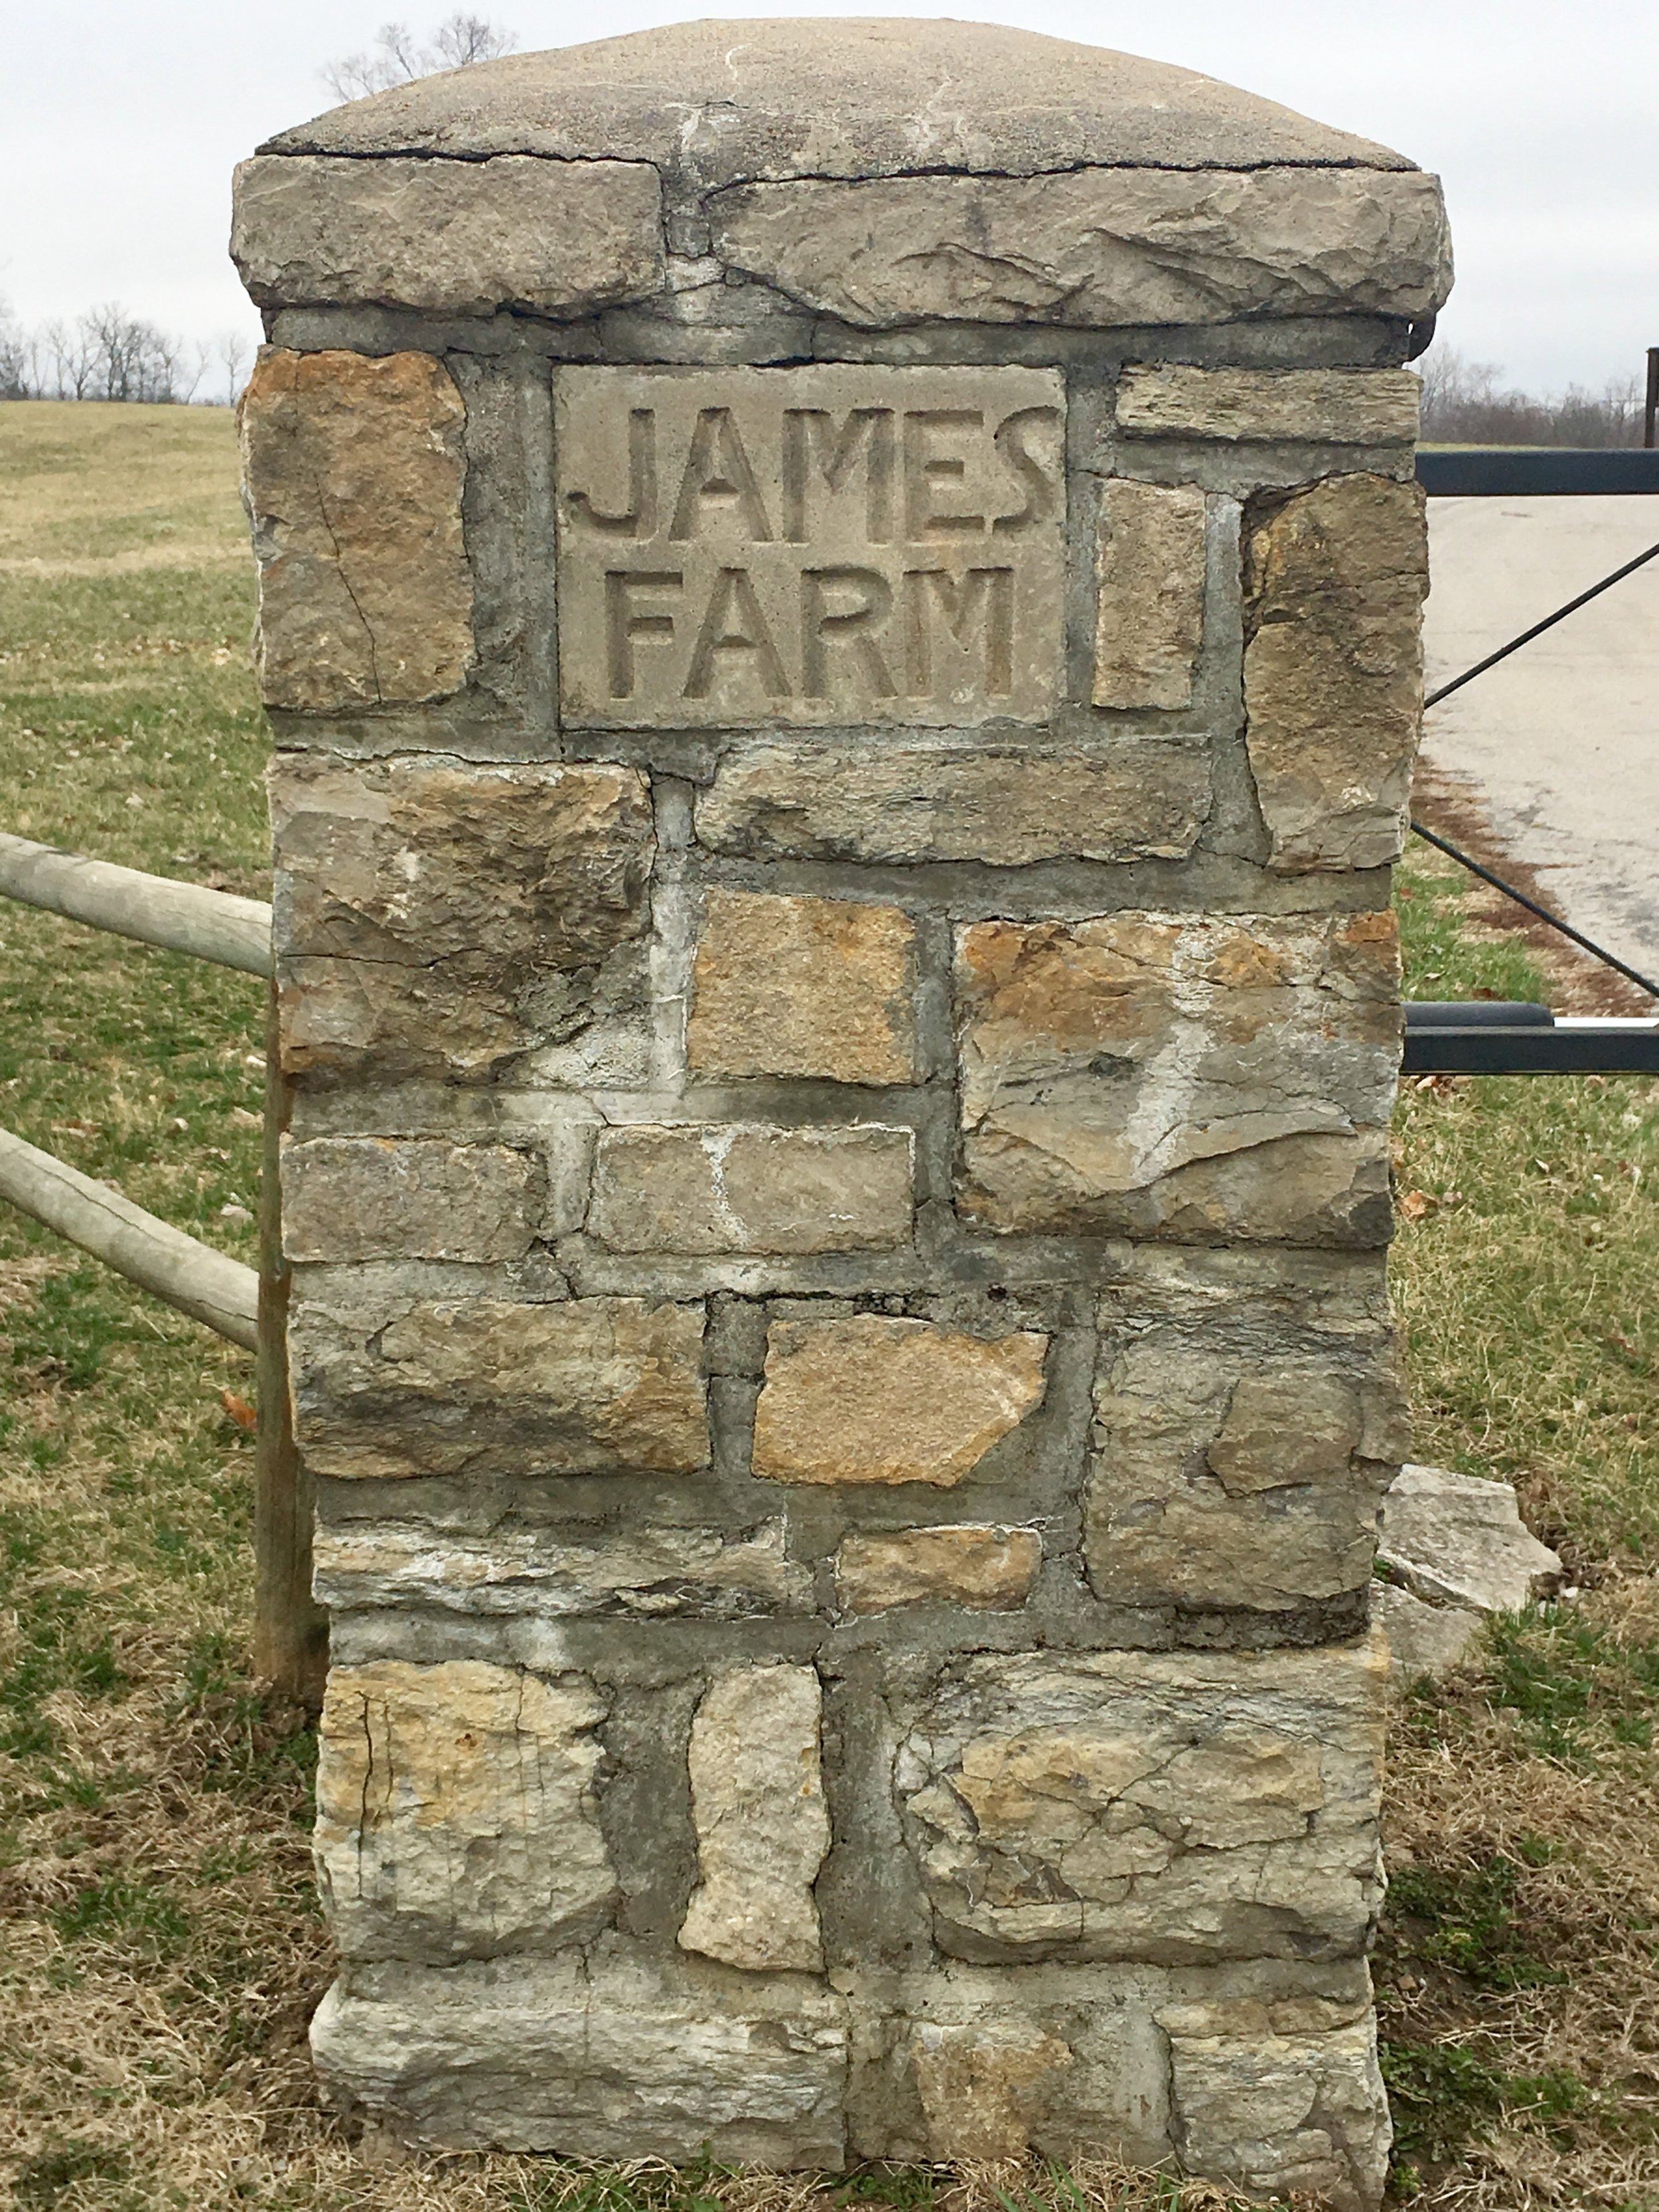 At the edge of the Jesse James farm outside Kearney, Missouri.